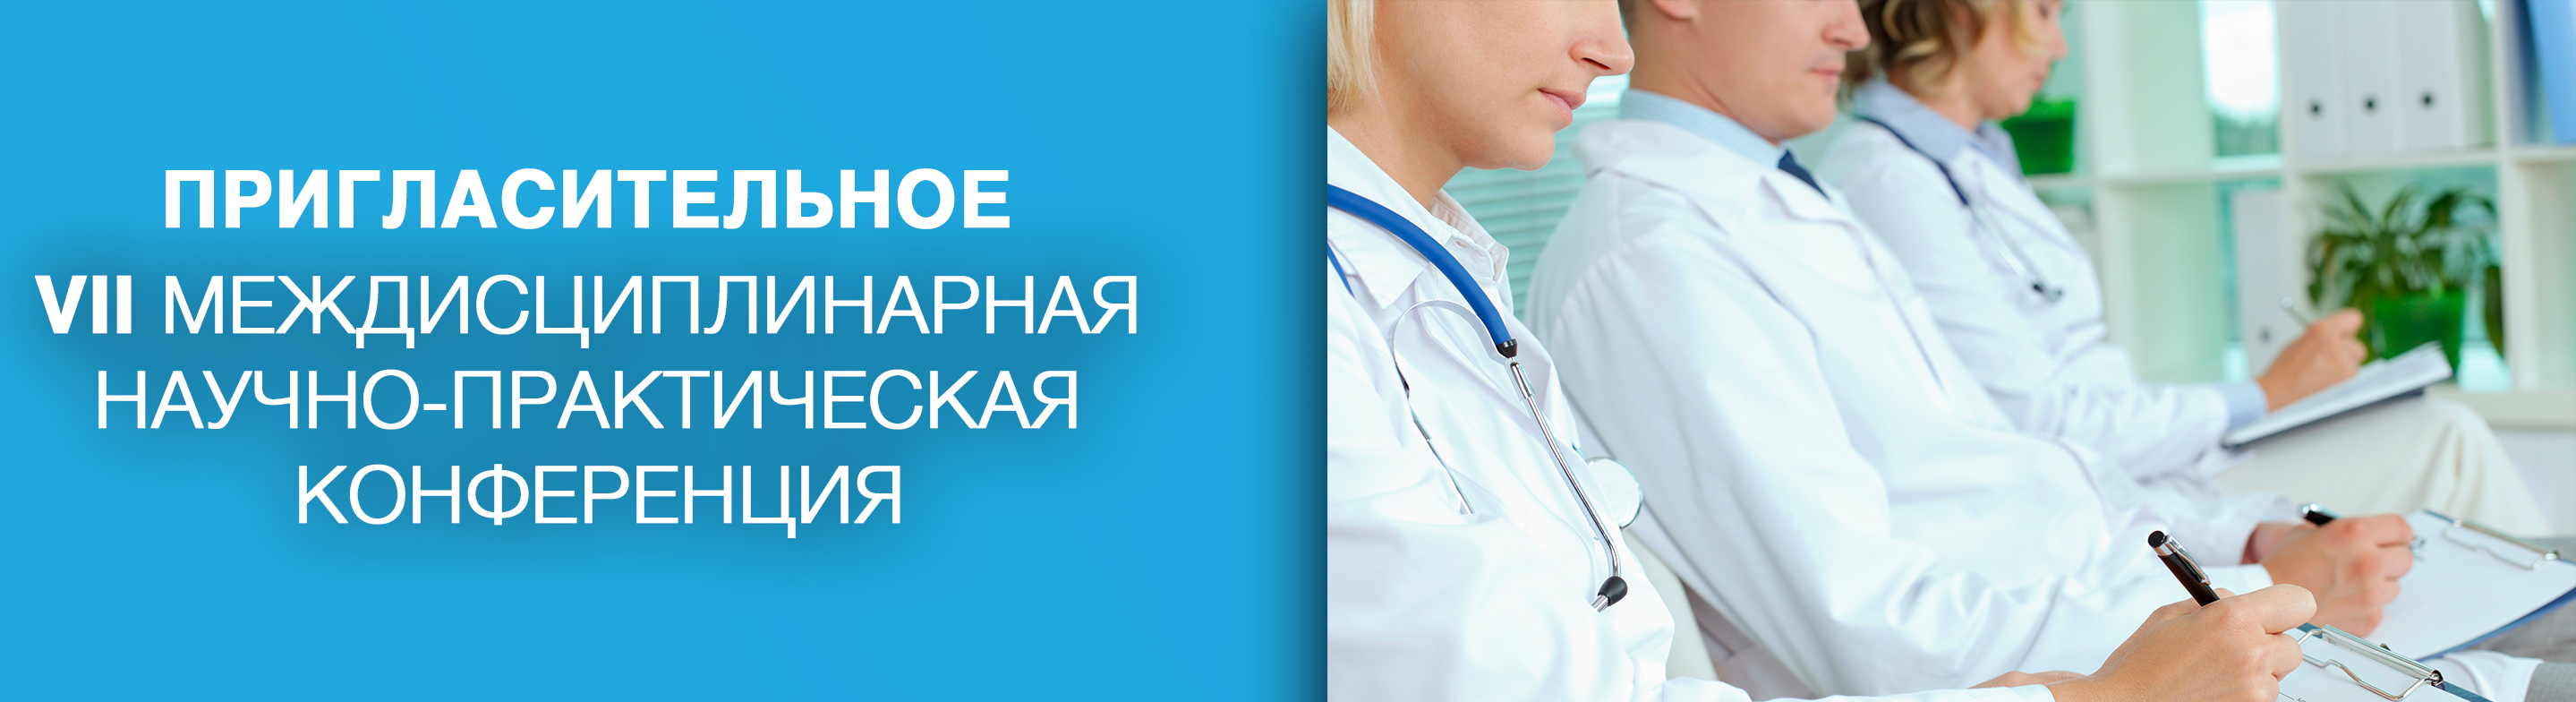 //nb-clinic.ru/wp-content/uploads/2018/01/VII.jpg